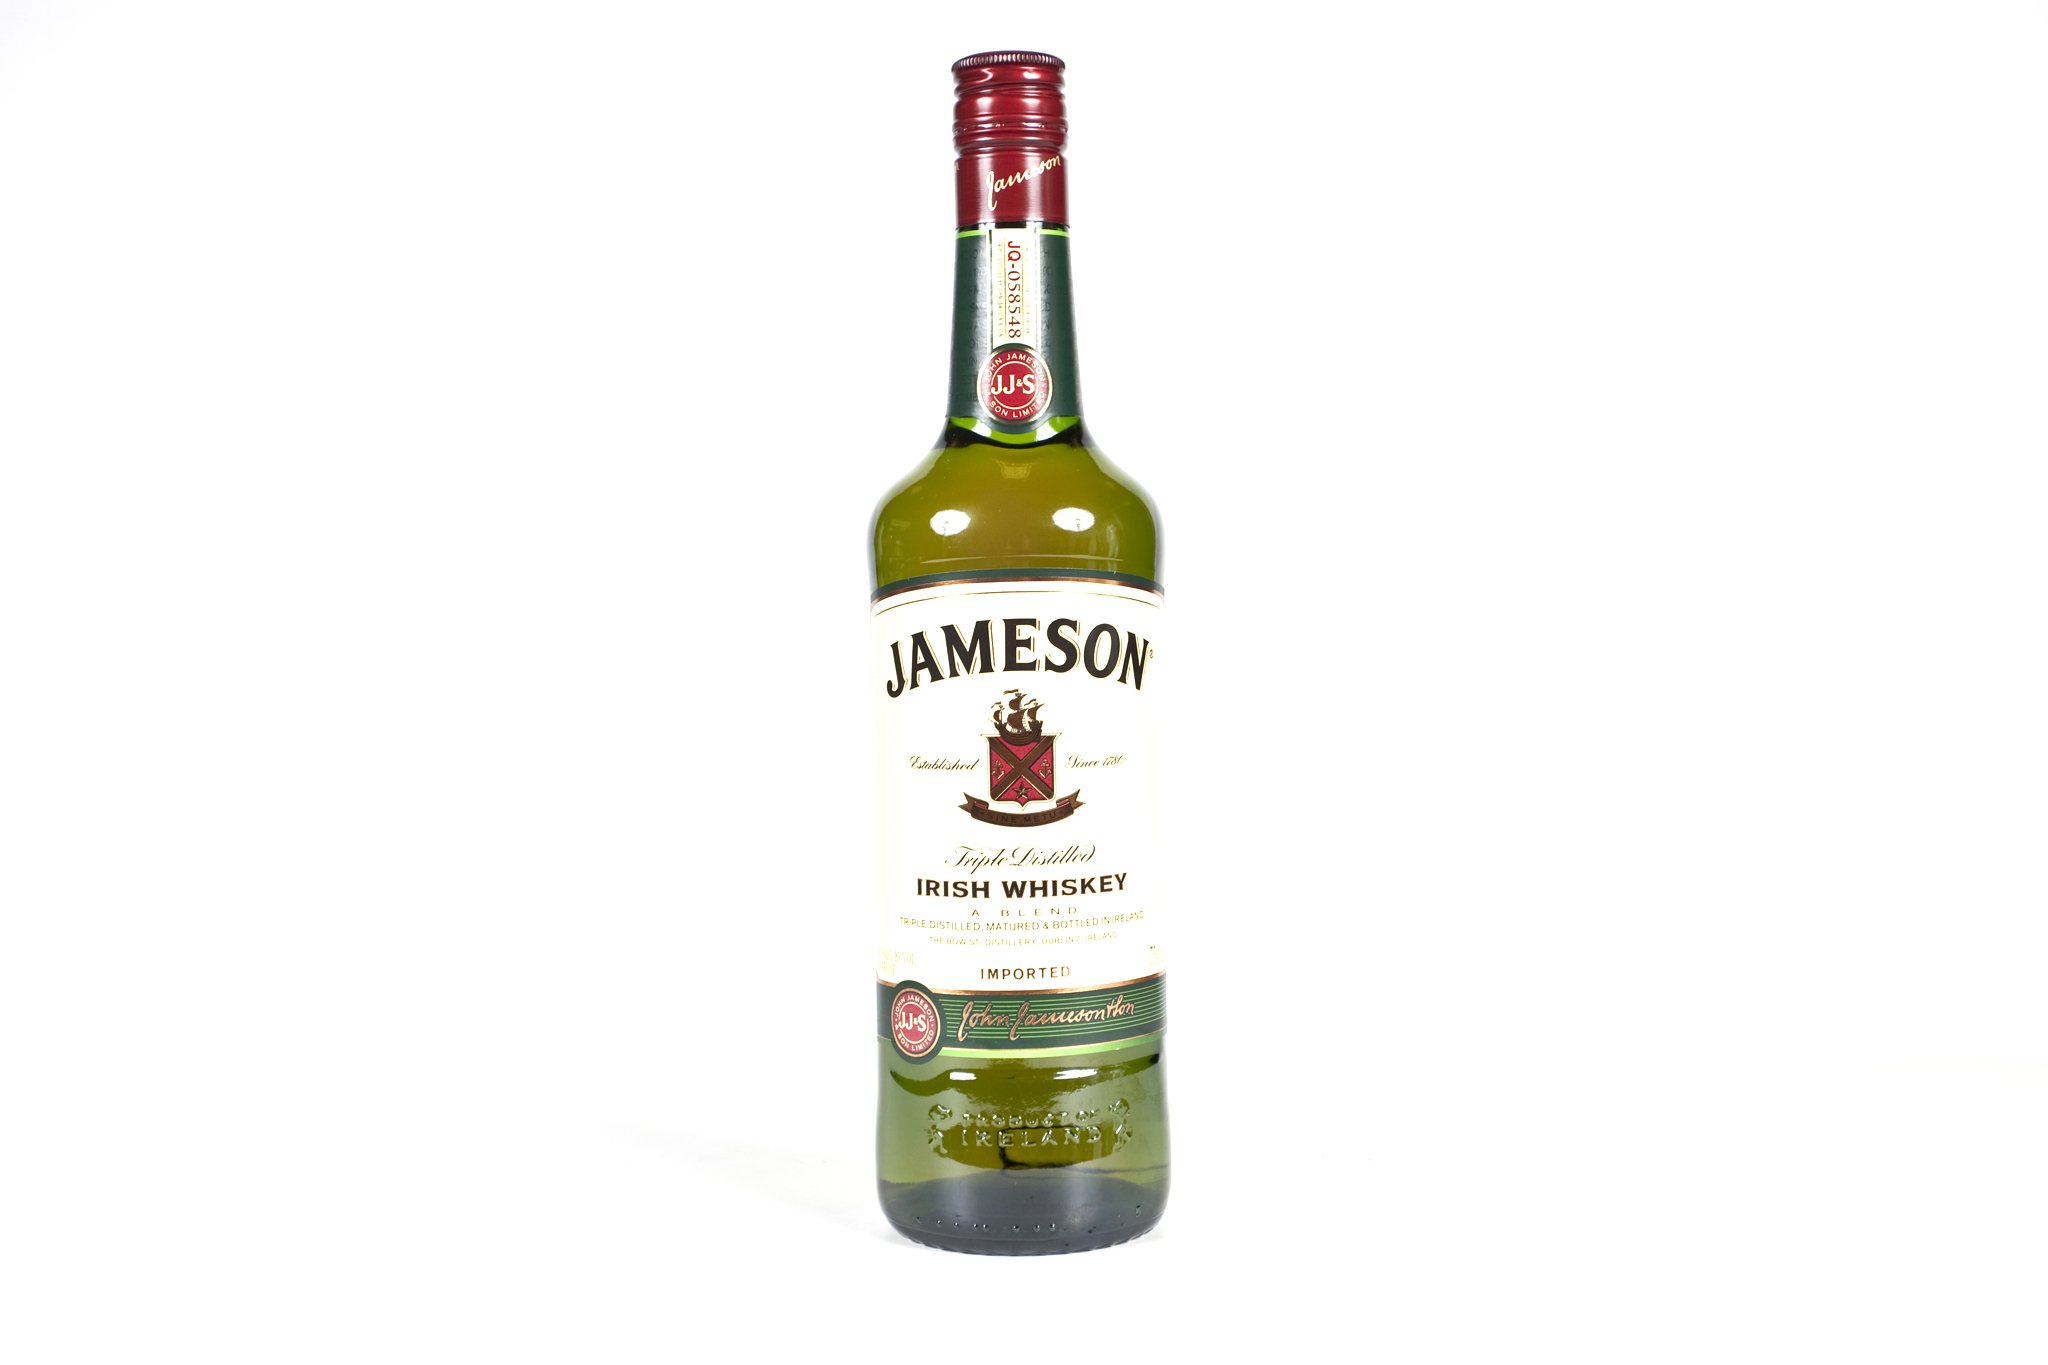 "Jameson""If you like a lighter whiskey, Jameson is, of course, the classic."" Available at Astor Wine & Spirits, 399 Lafayette St at 4th St (212-674-7500). 1L $29.99."